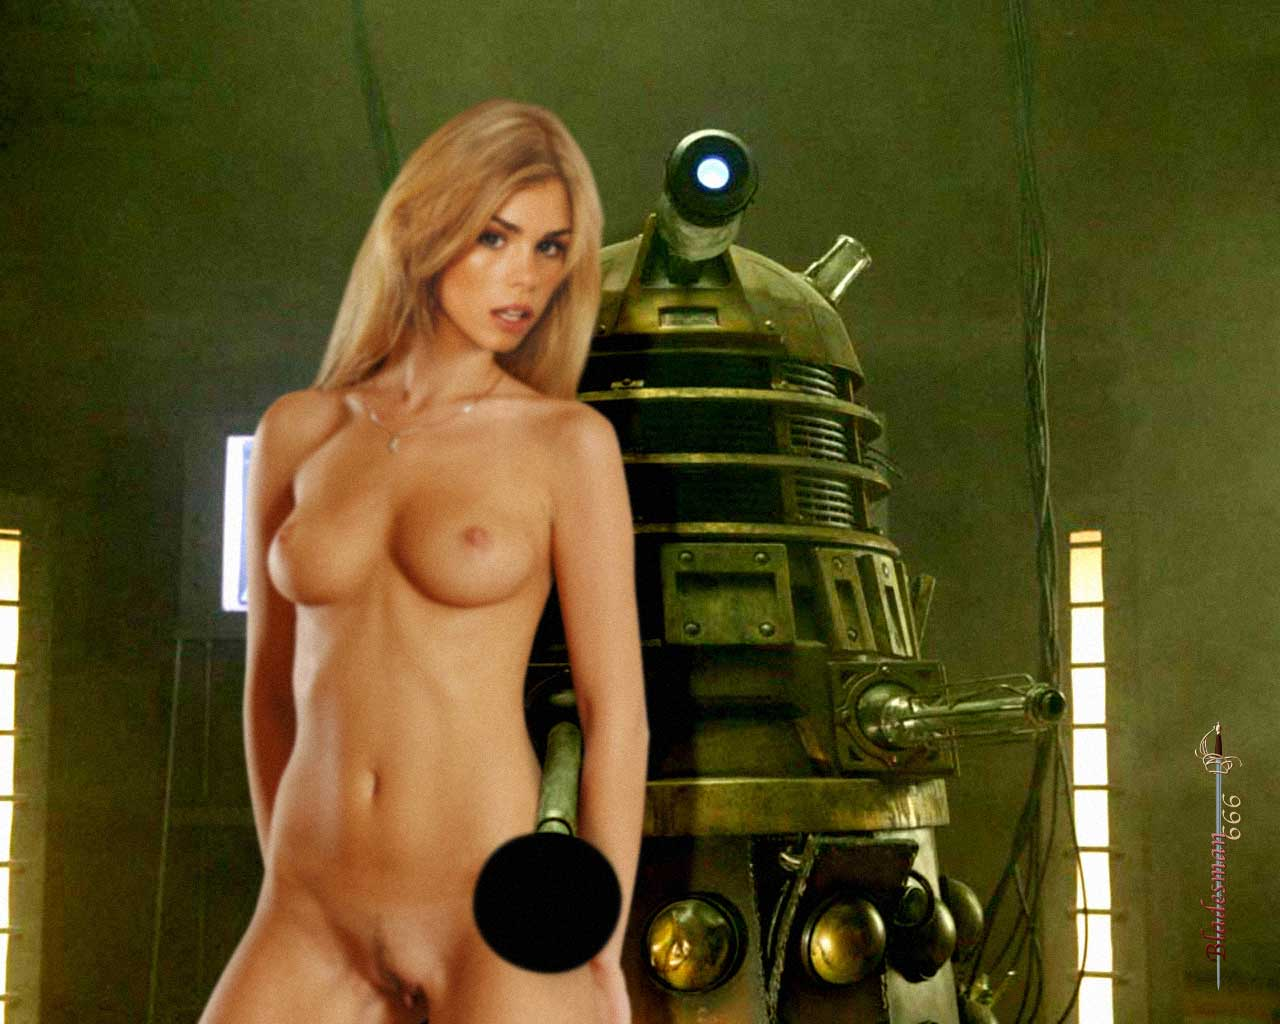 Billie Piper – Gallifrey with a dirty mind